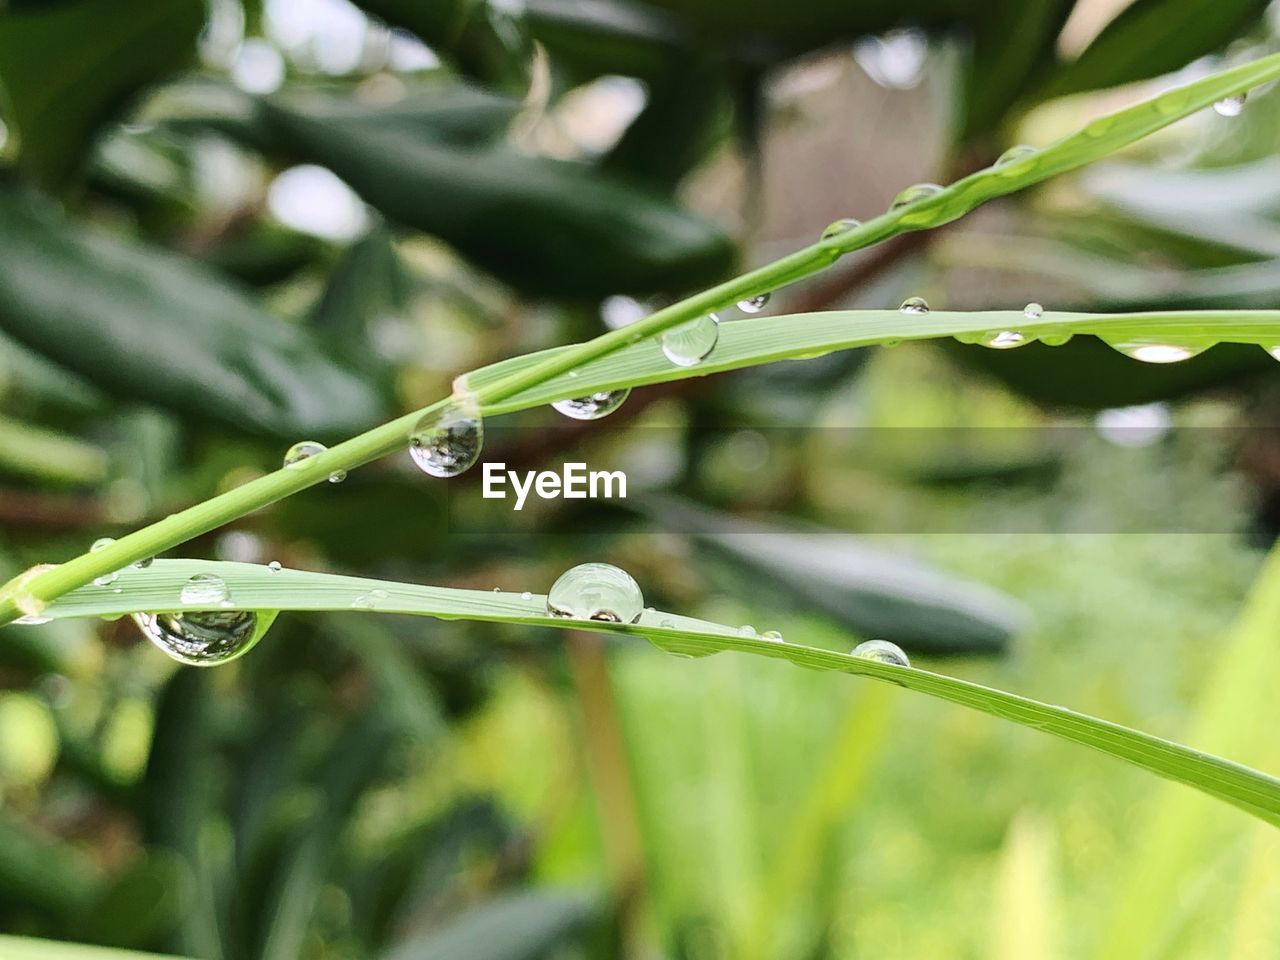 drop, water, green color, growth, plant, focus on foreground, close-up, wet, nature, day, beauty in nature, plant part, no people, leaf, freshness, blade of grass, selective focus, fragility, vulnerability, dew, outdoors, purity, raindrop, rain, rainy season